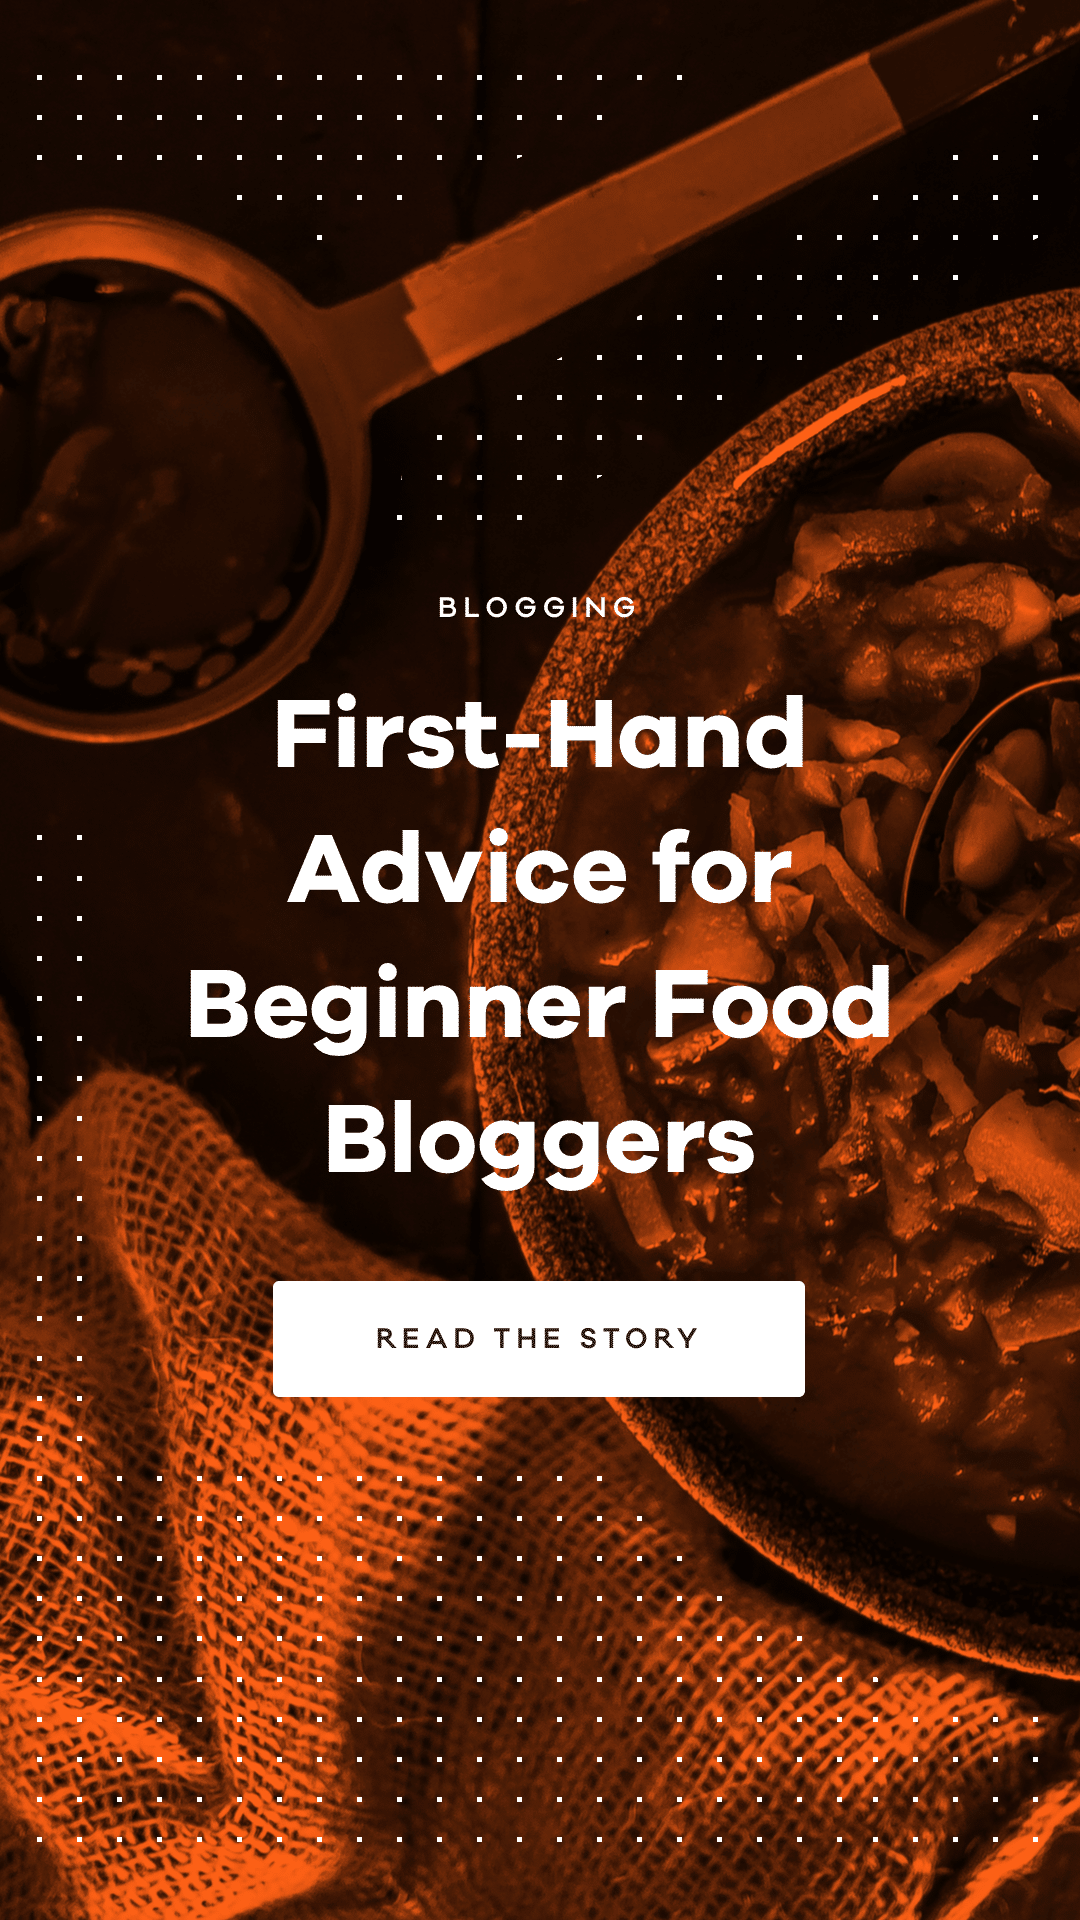 Learn first-hand advice for beginner food bloggers from the creators of DicedandSpiced.com